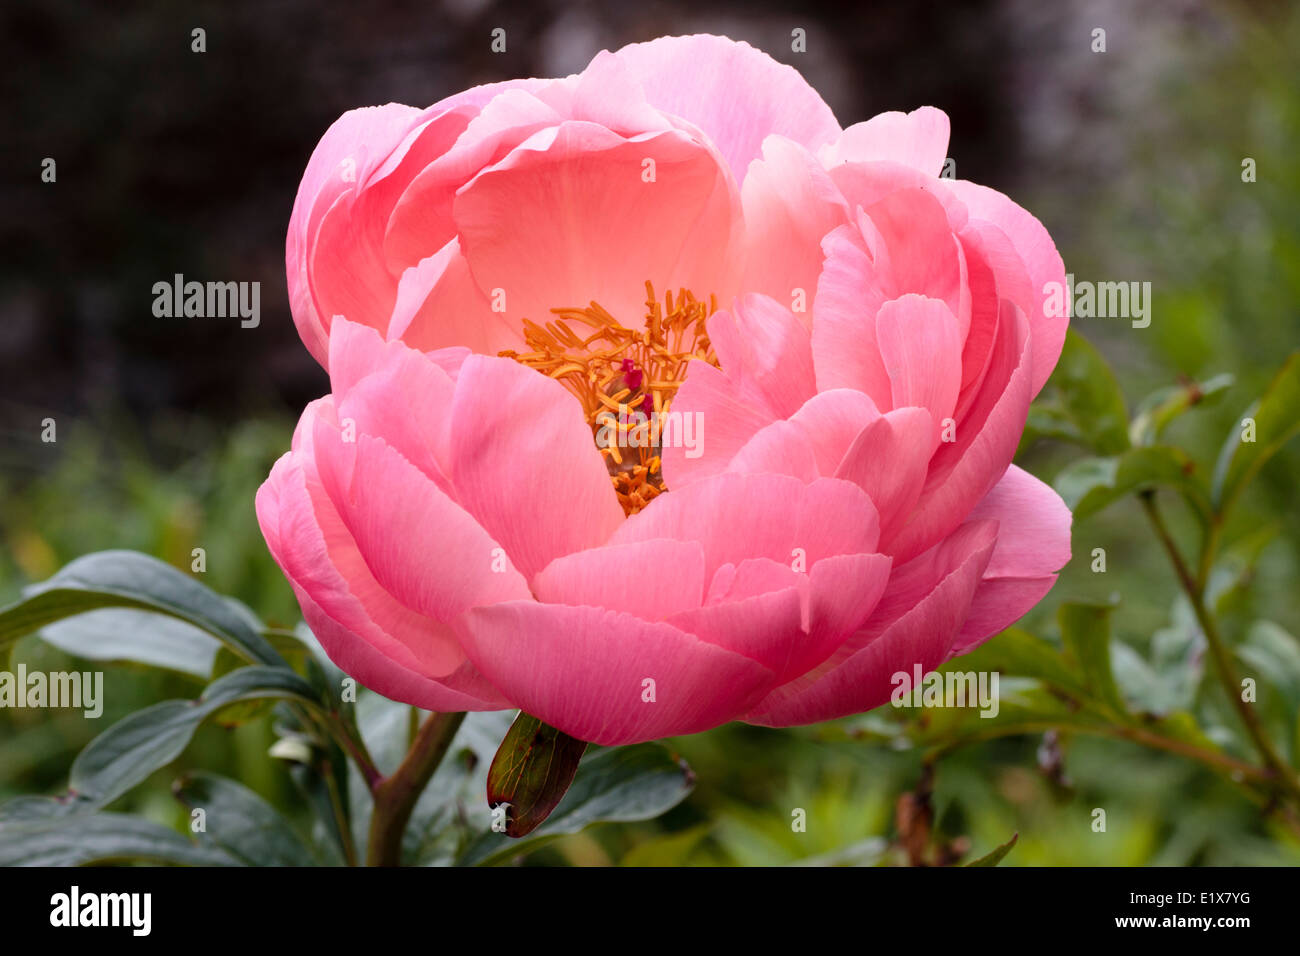 Single flower of the peony, Paeonia 'Coral Charm' - Stock Image